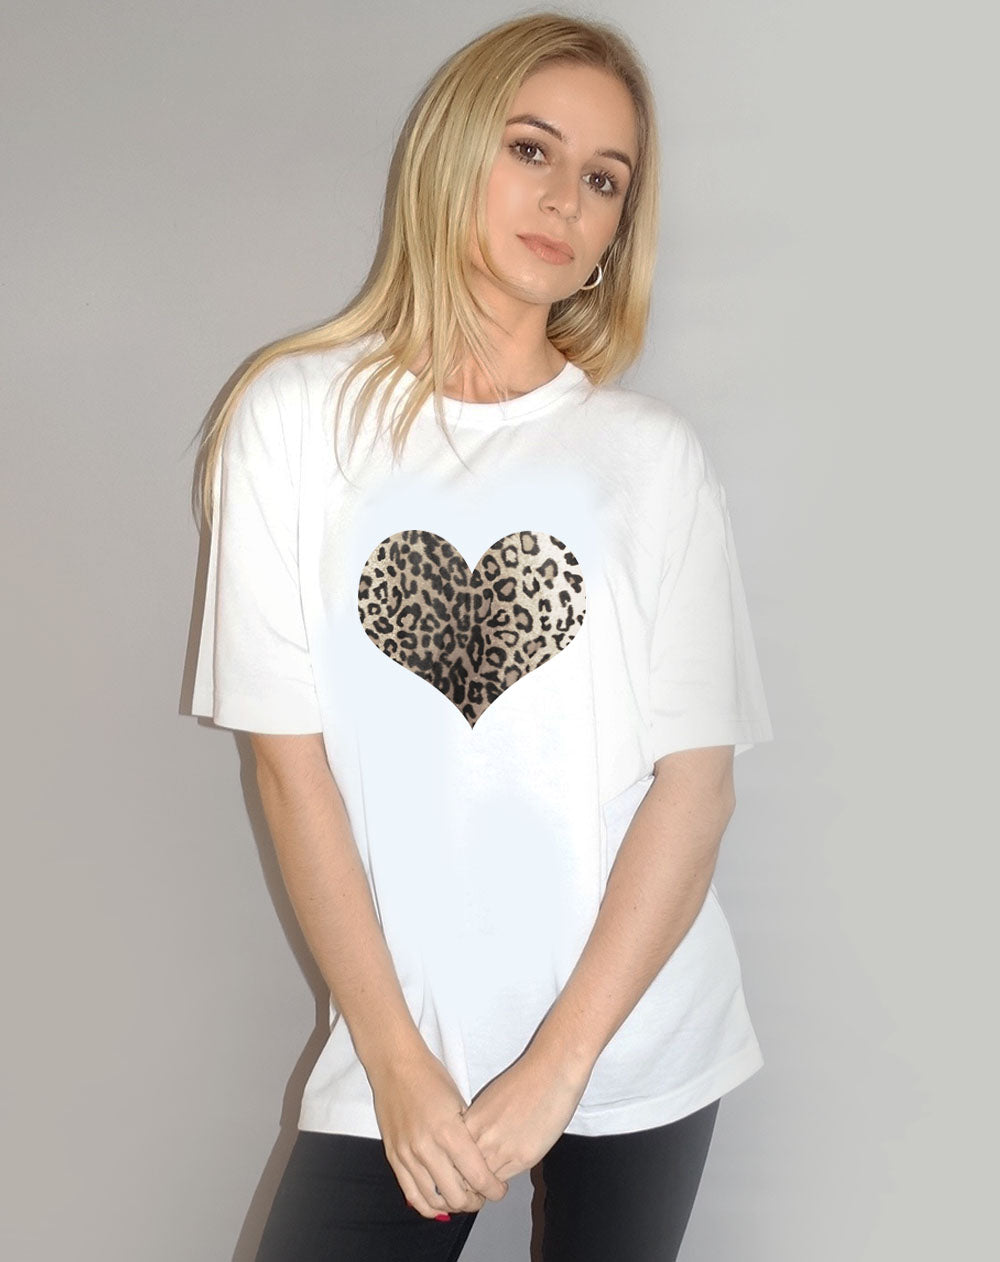 Monochrome Leopard Heart Tshirt in White